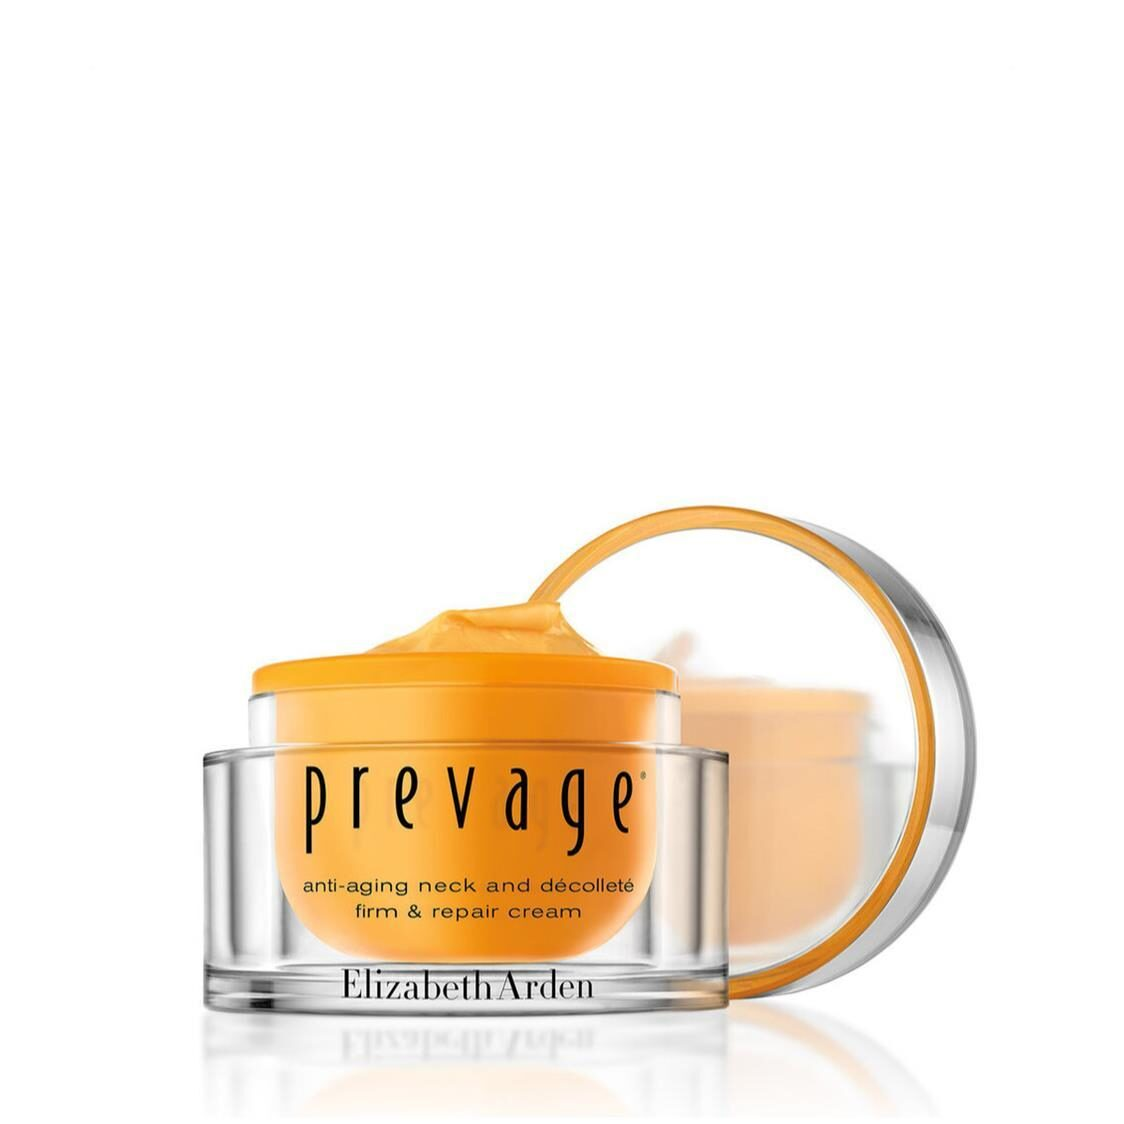 PREVAGE Anti-Aging Neck and Dcollet Firm  Repair Cream